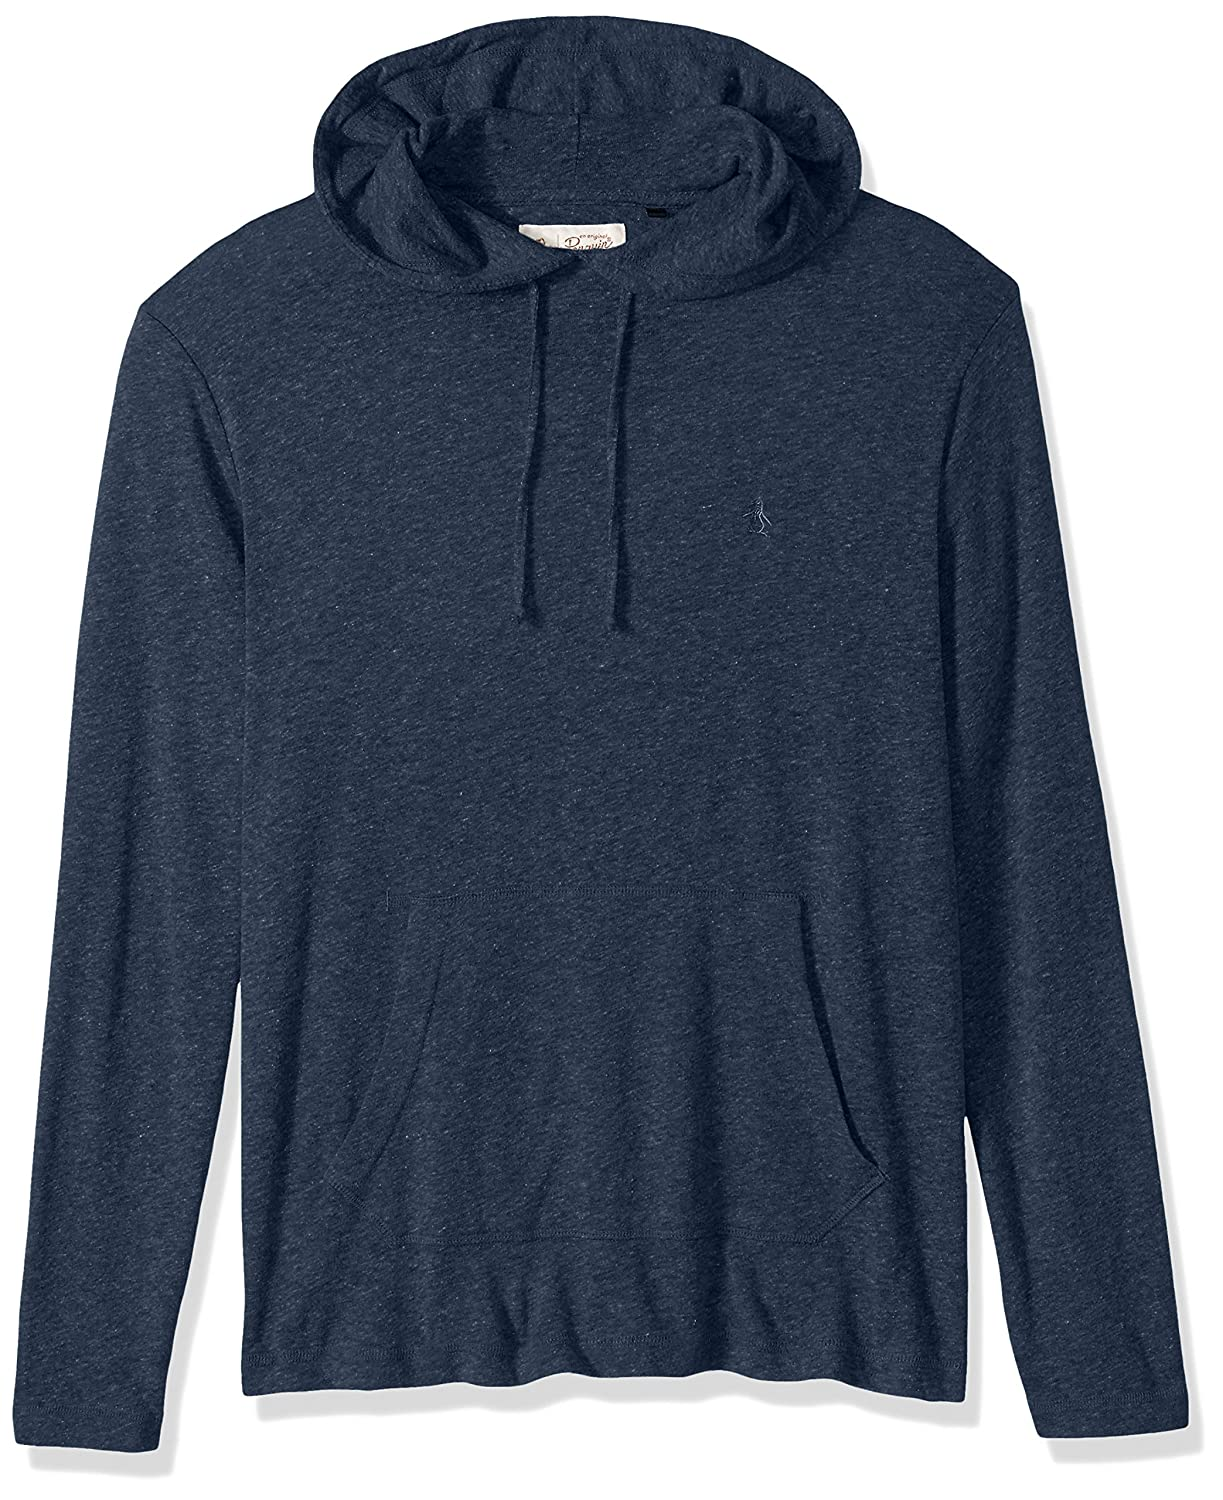 Original Penguin Men's Pullover Tri-Blend Hoodie OPKF7C49